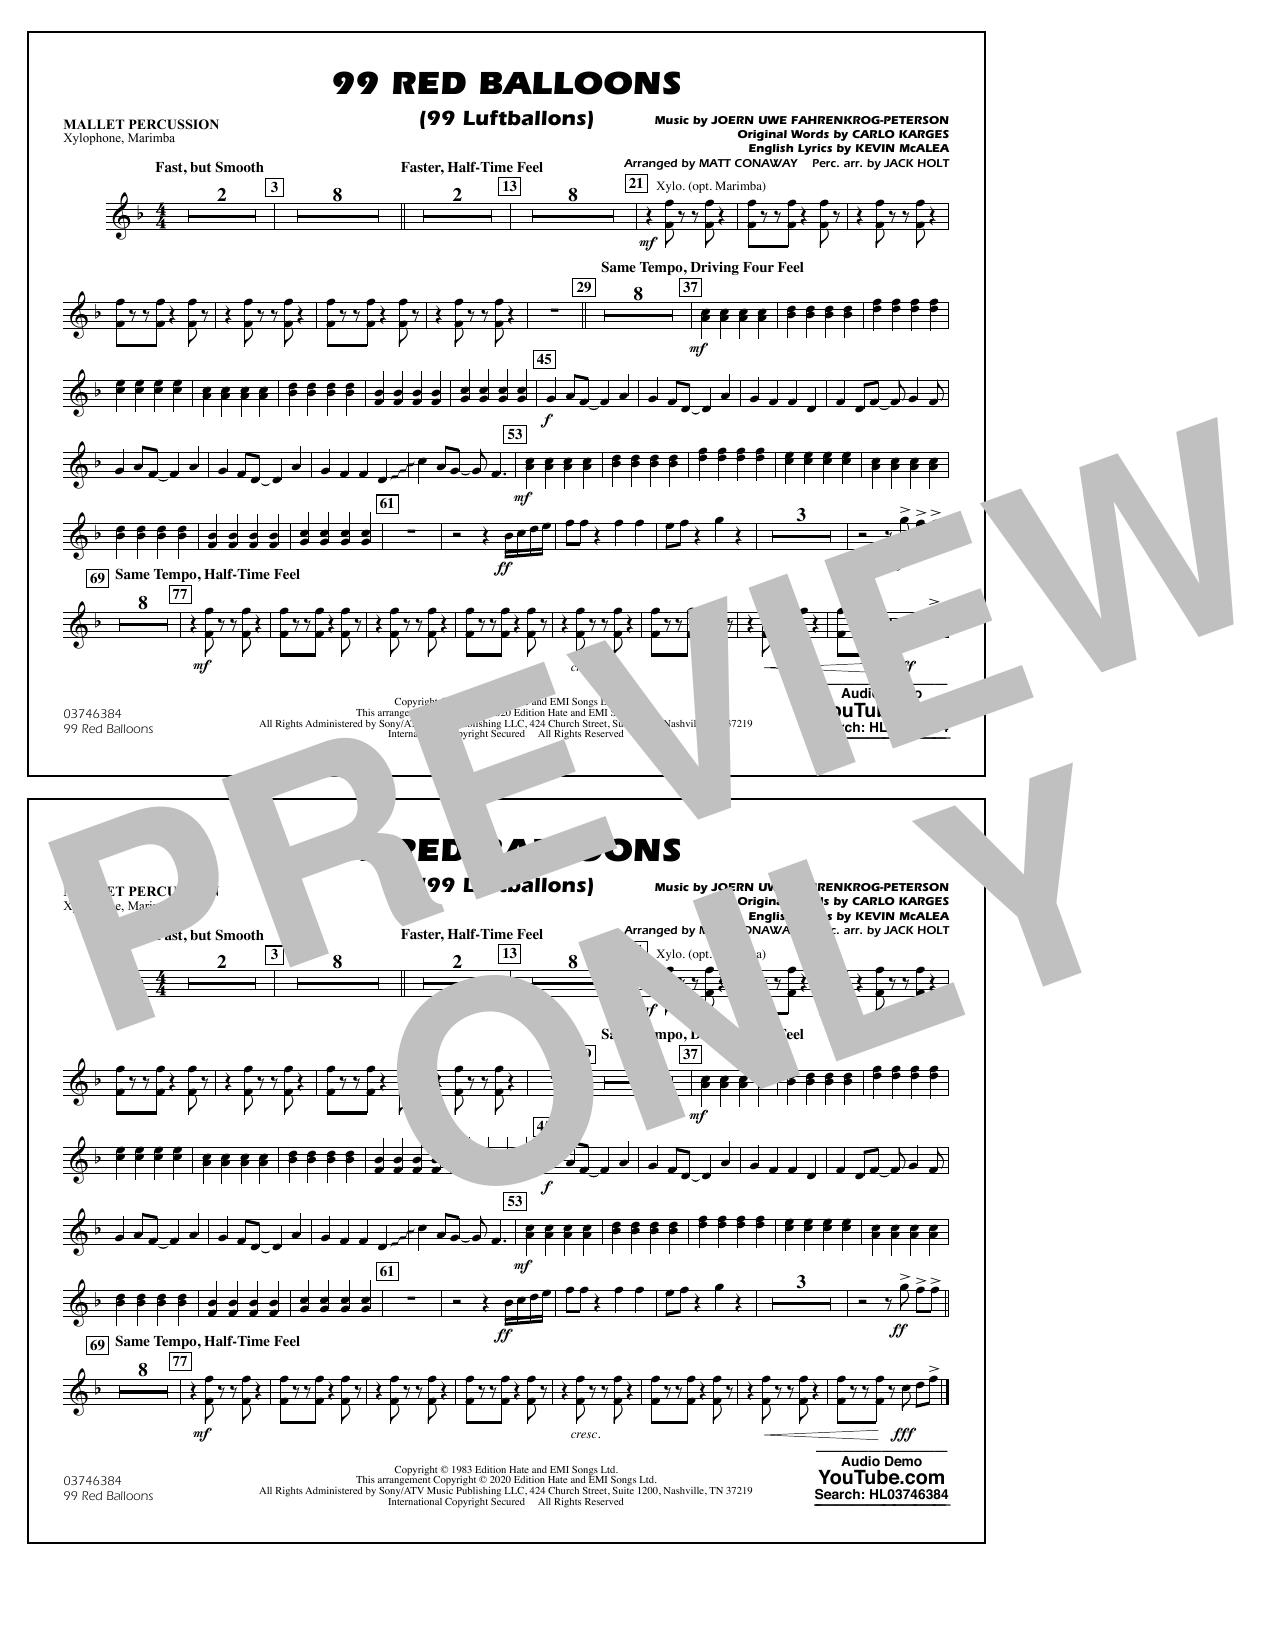 99 Red Balloons (arr. Holt and Conaway) - Mallet Percussion Sheet Music